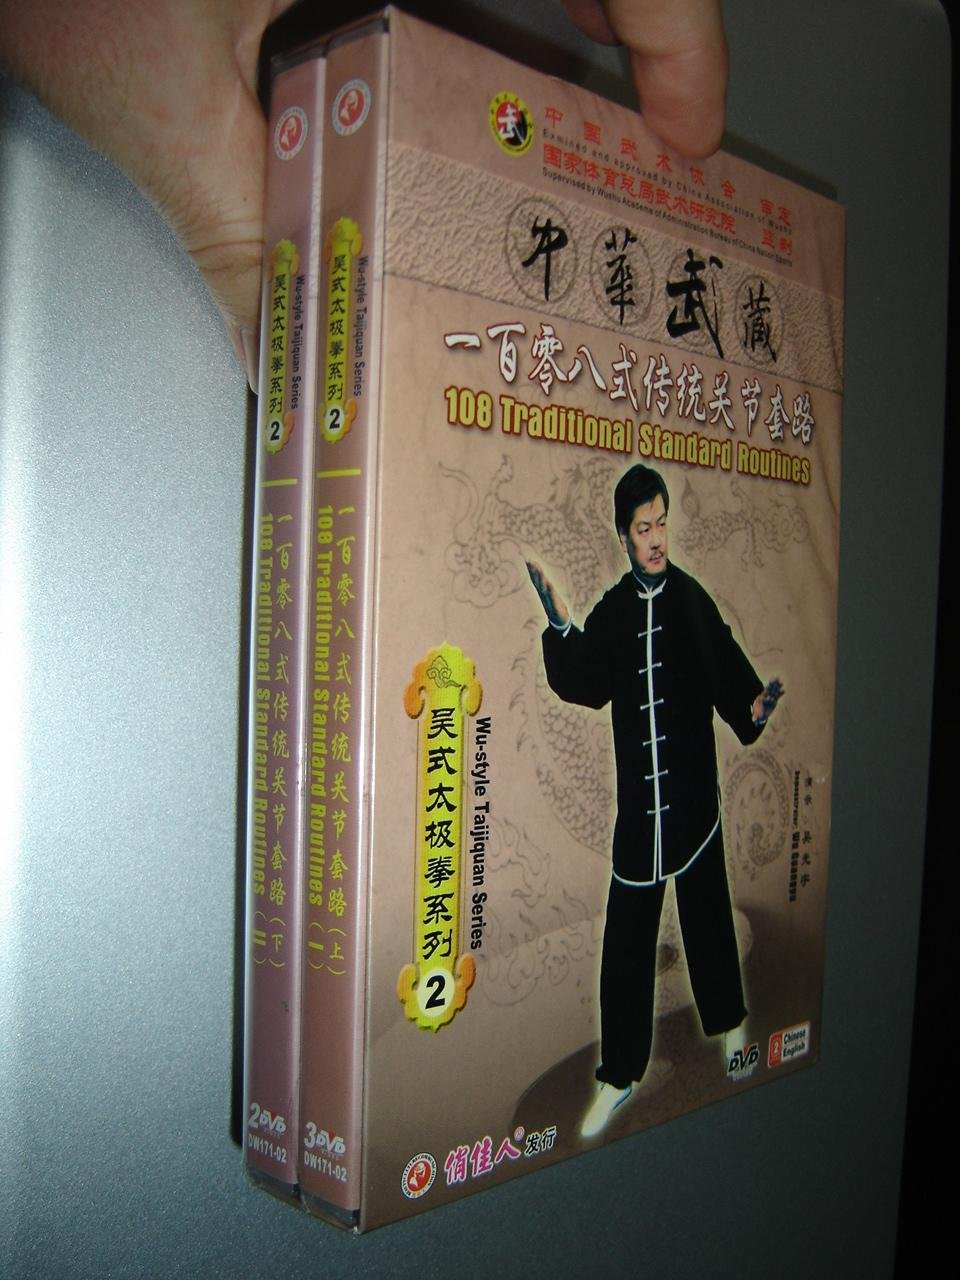 Amazon.com: 108 Traditional Standard Routines – Wu-Style Taijiquan Series 2 / 一百零八式传统关节套路–吴式太极拳系列 2 [DVD All Regions NTSC] Audio: Chinese ...